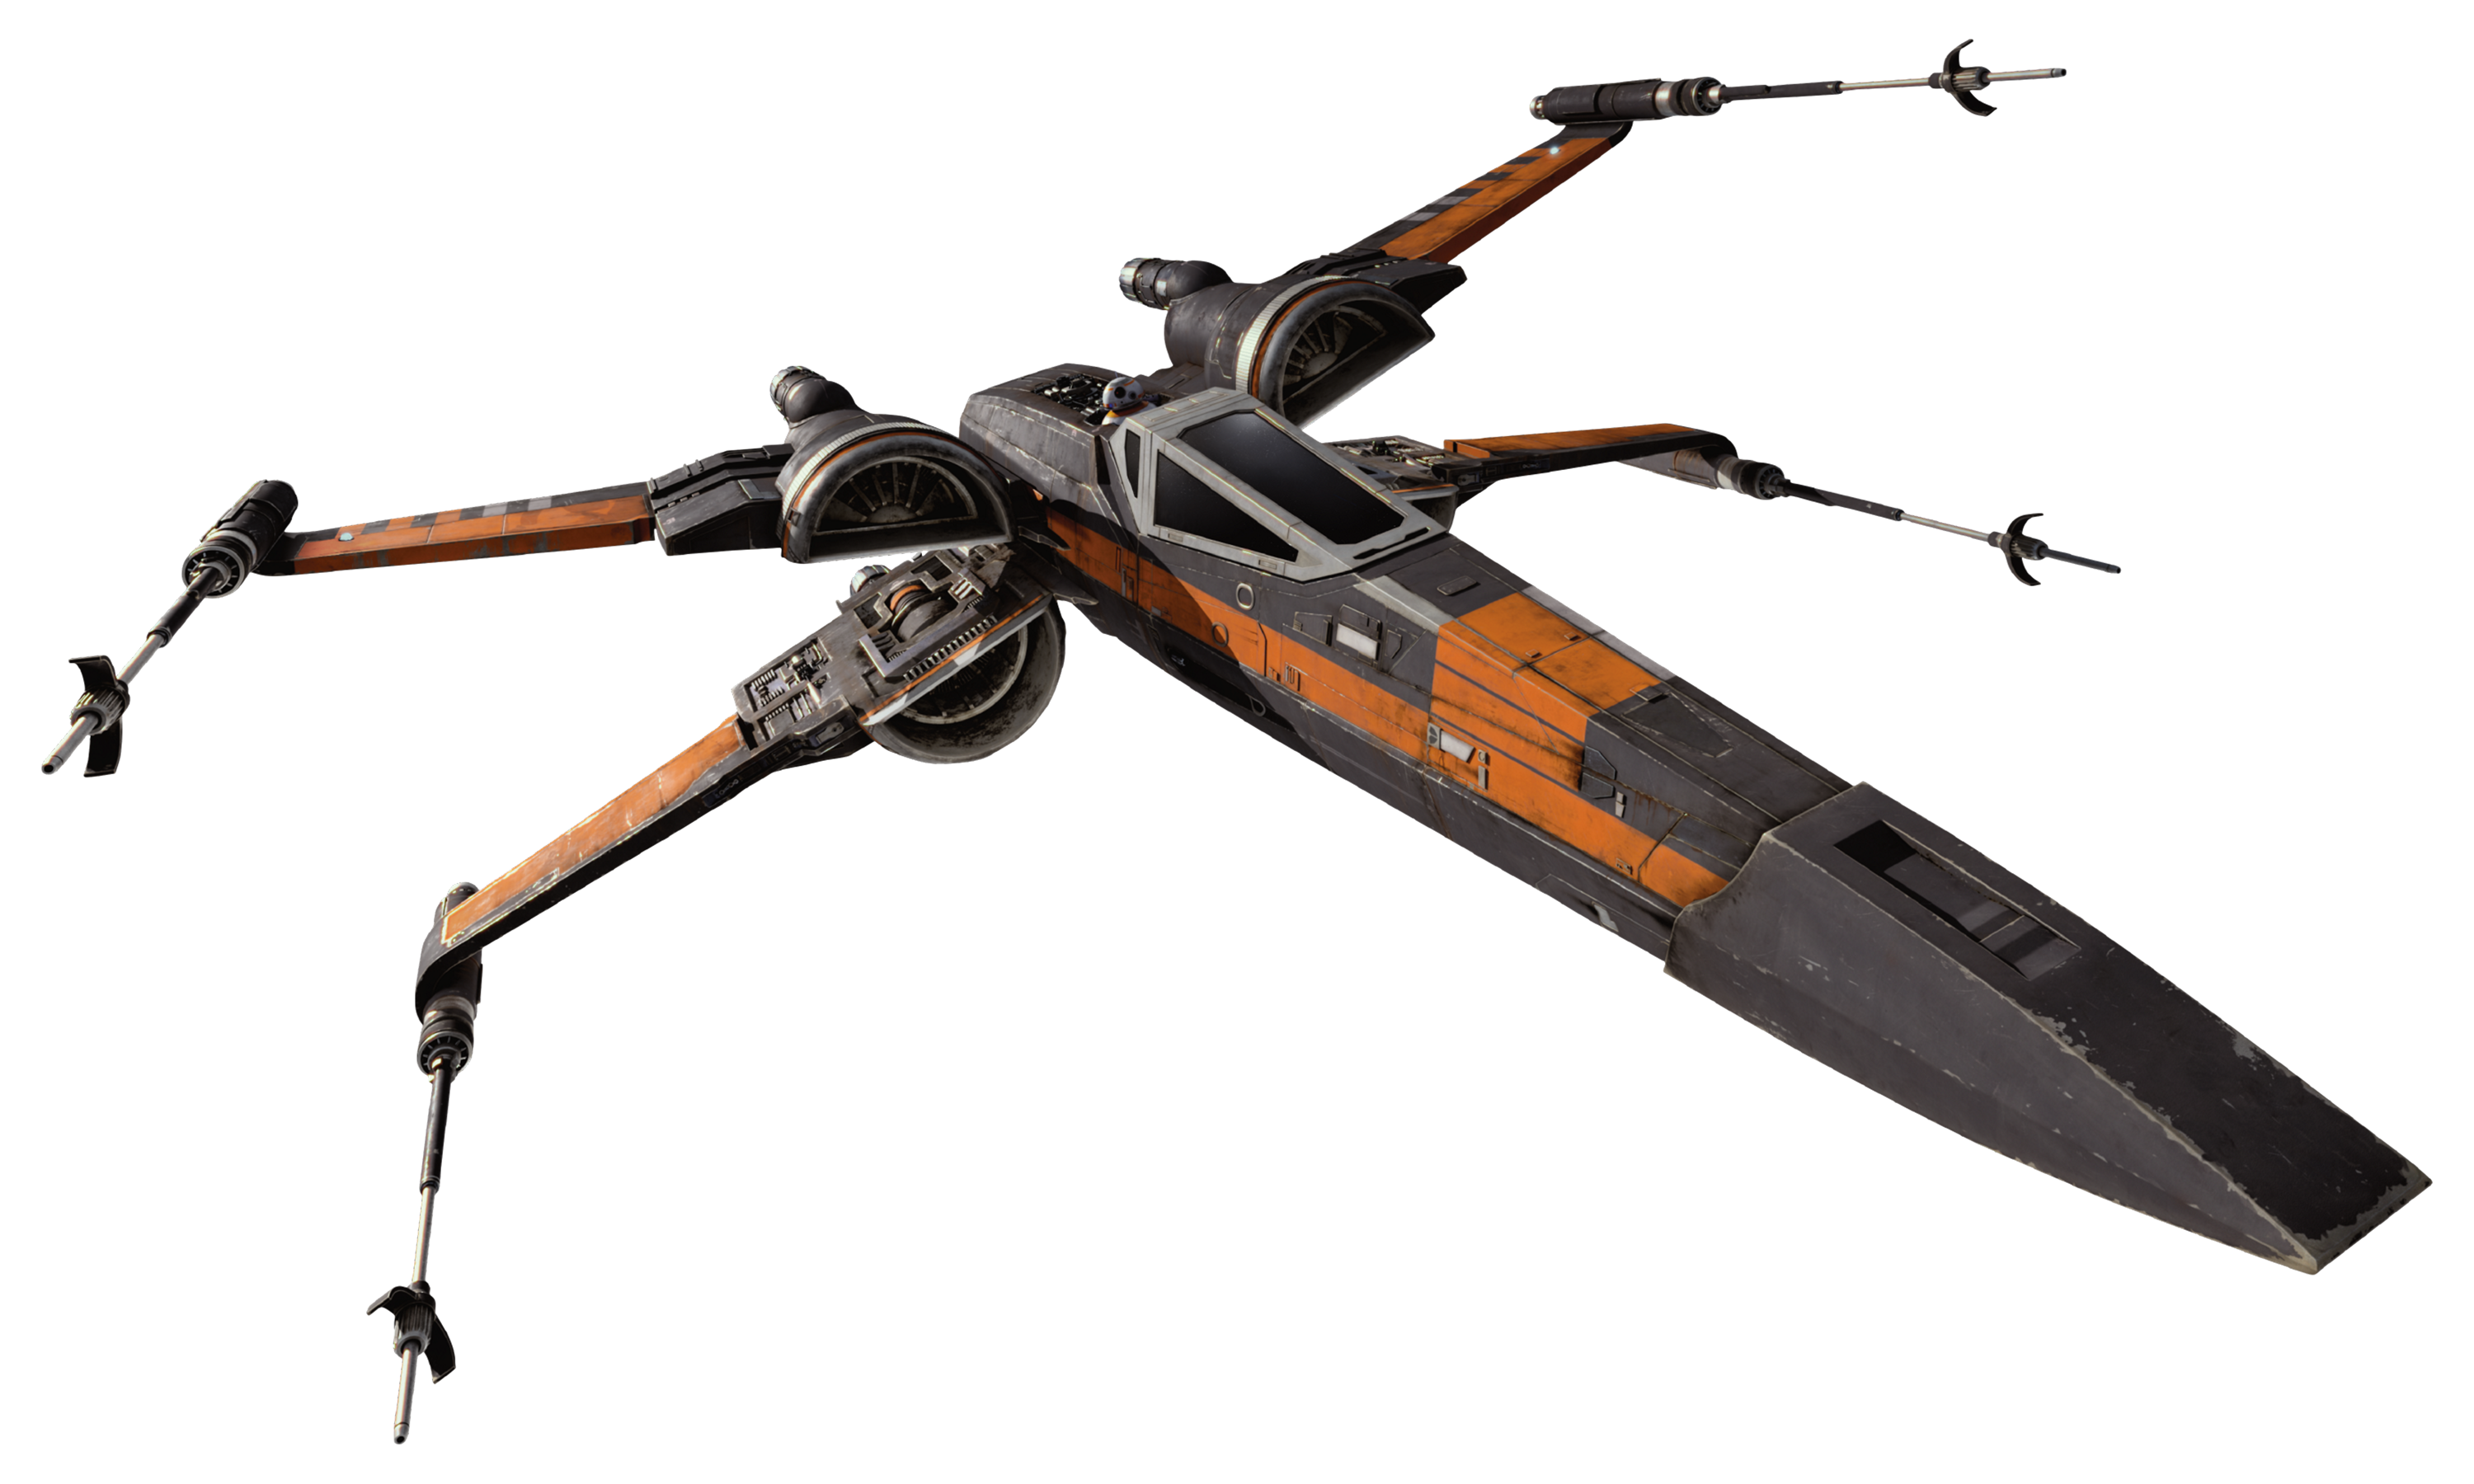 Star wars ships clipart image royalty free stock X-wing starfighter | Wookieepedia | FANDOM powered by Wikia image royalty free stock